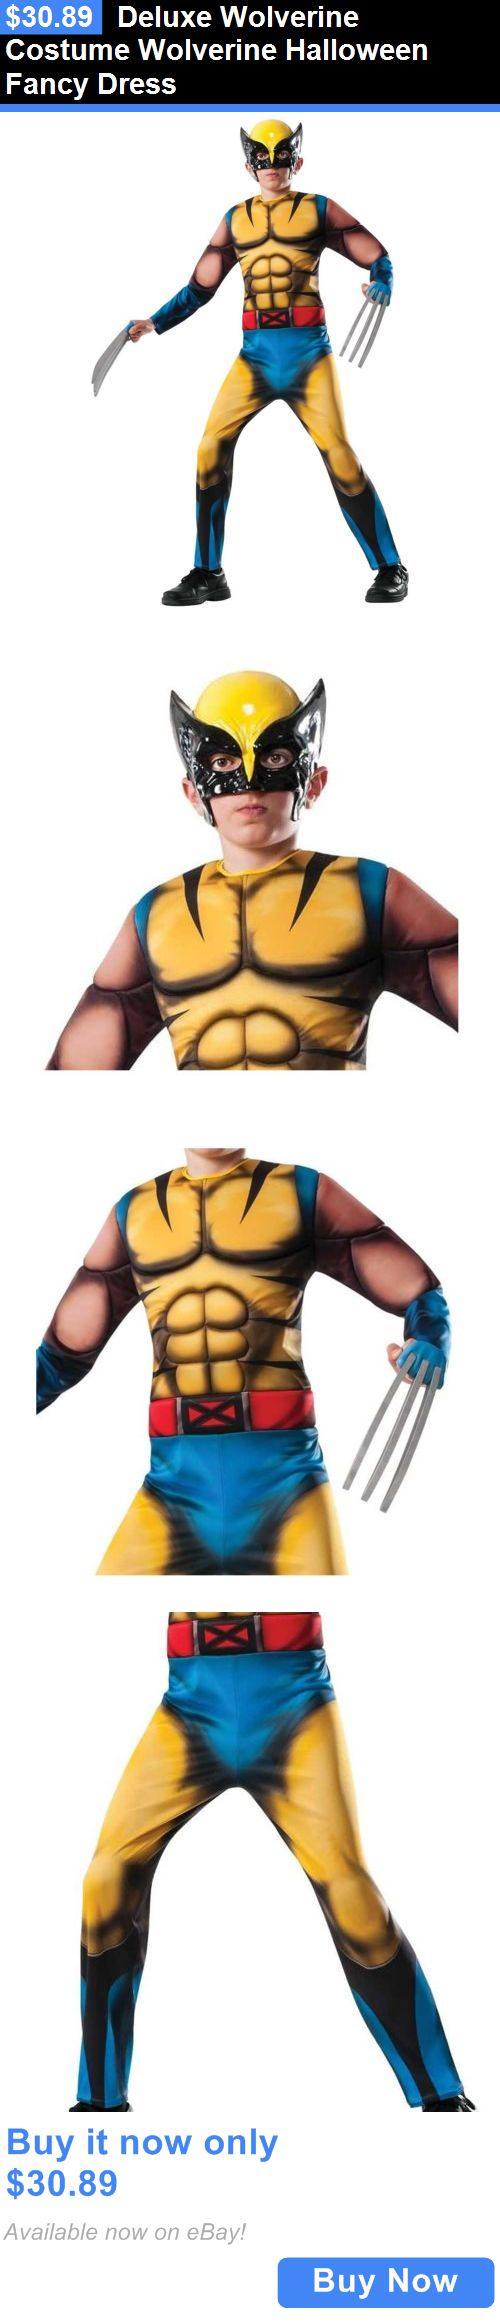 Halloween Costumes Kids: Deluxe Wolverine Costume Wolverine Halloween Fancy Dress BUY IT NOW ONLY: $30.89